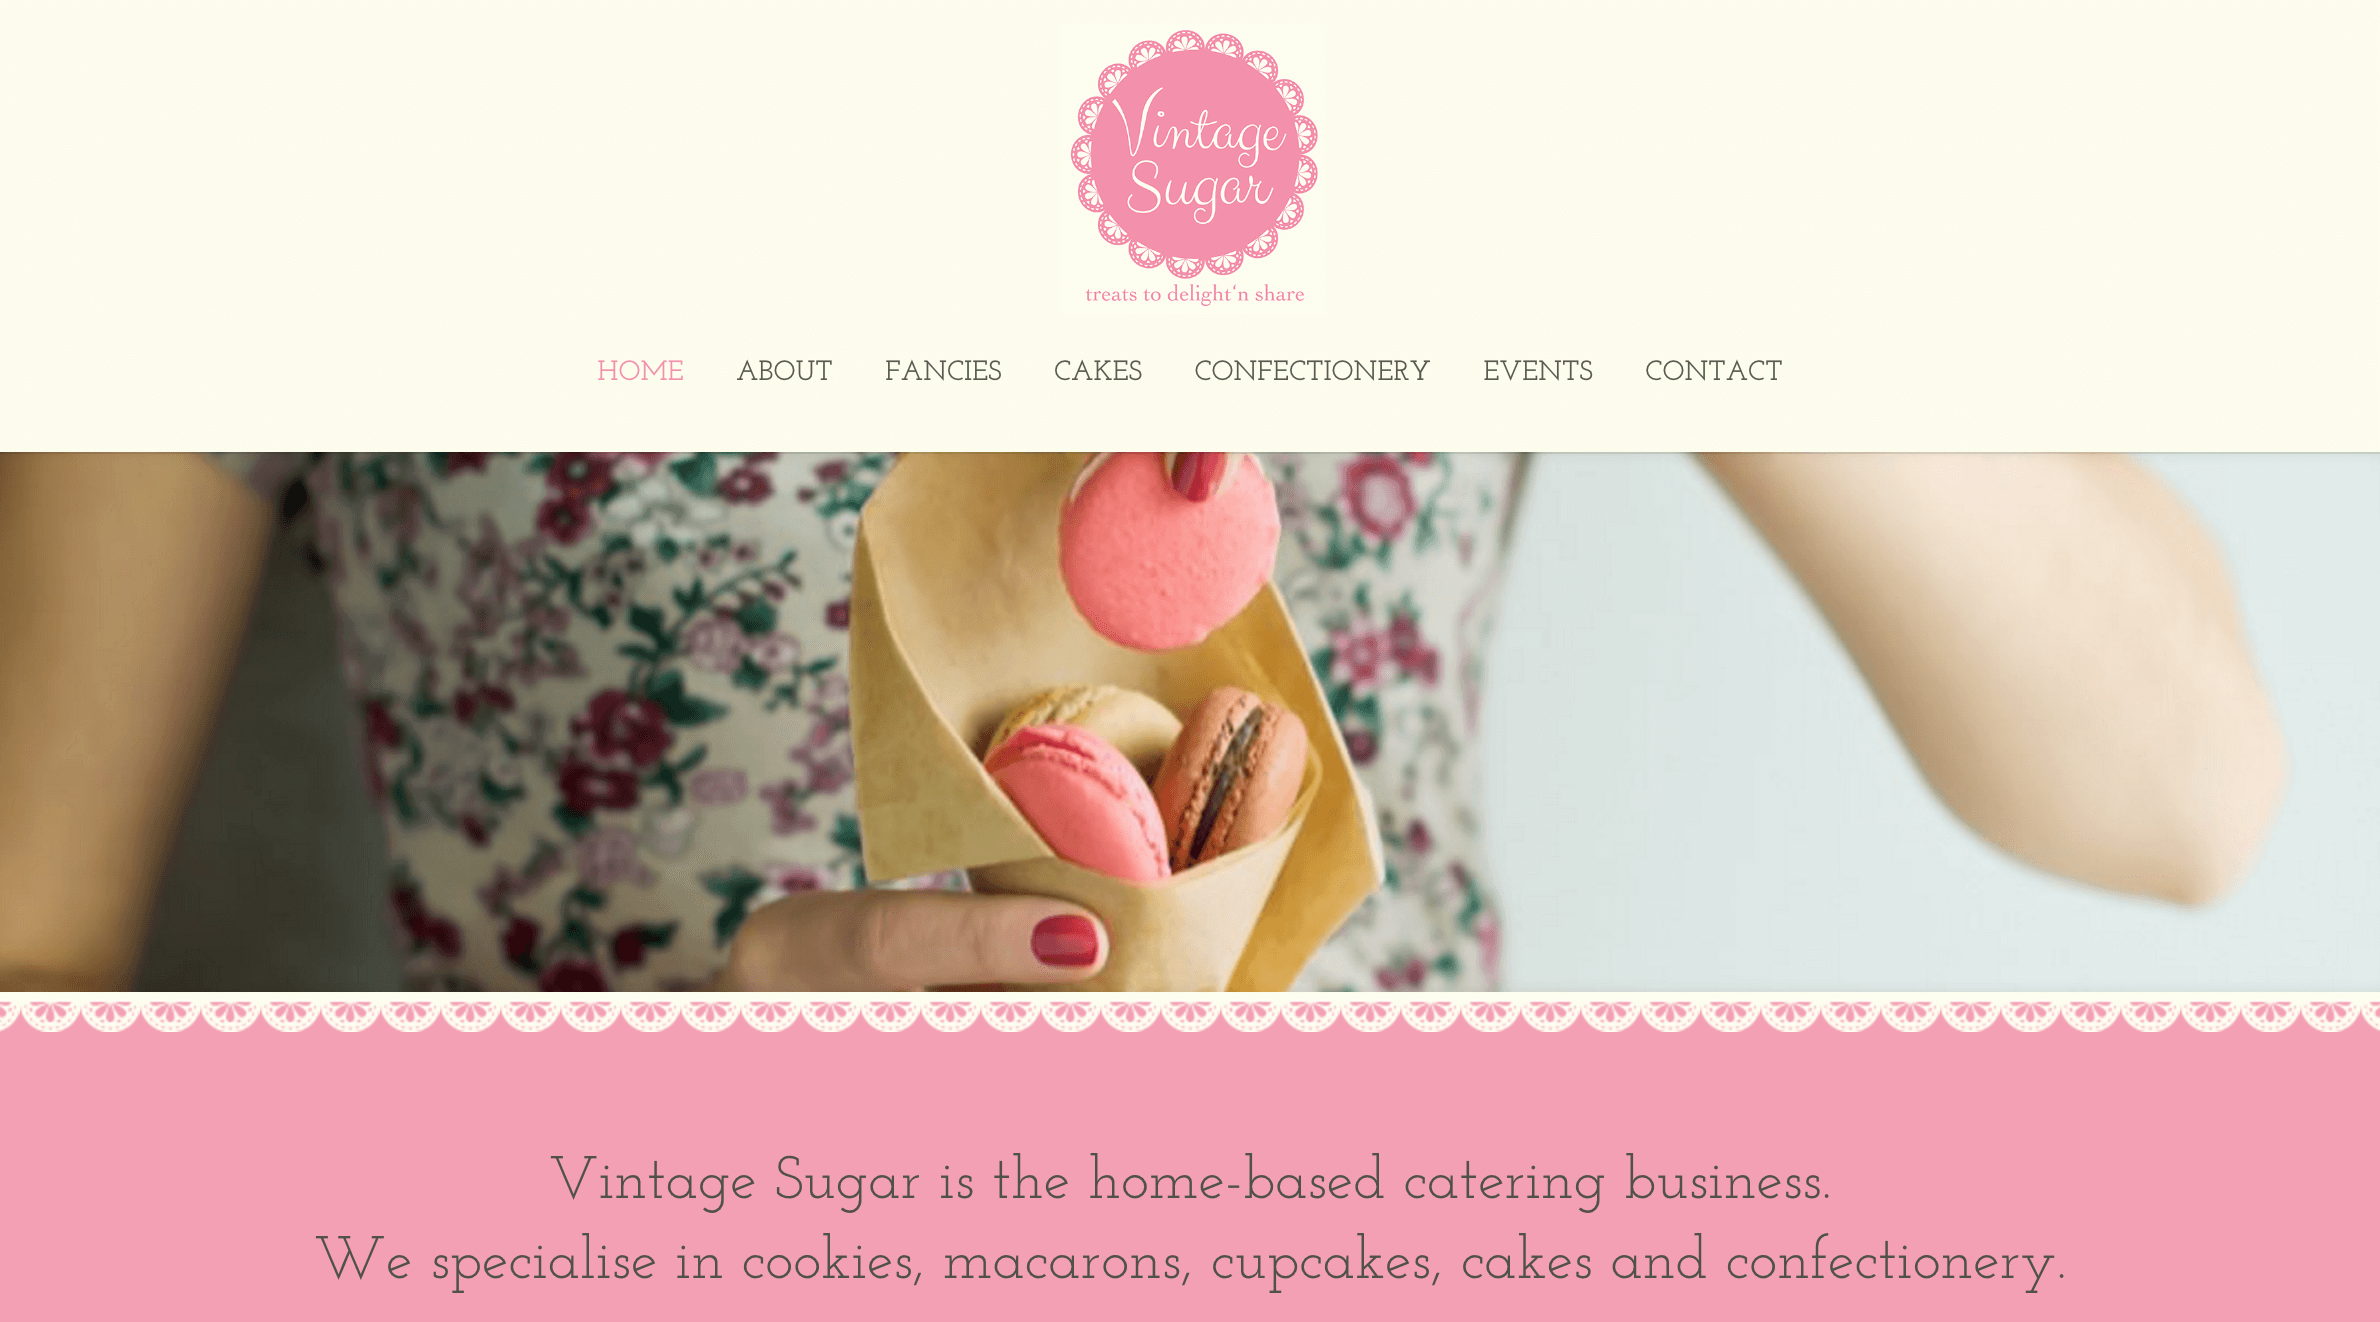 The Vintage Sugar homepage.